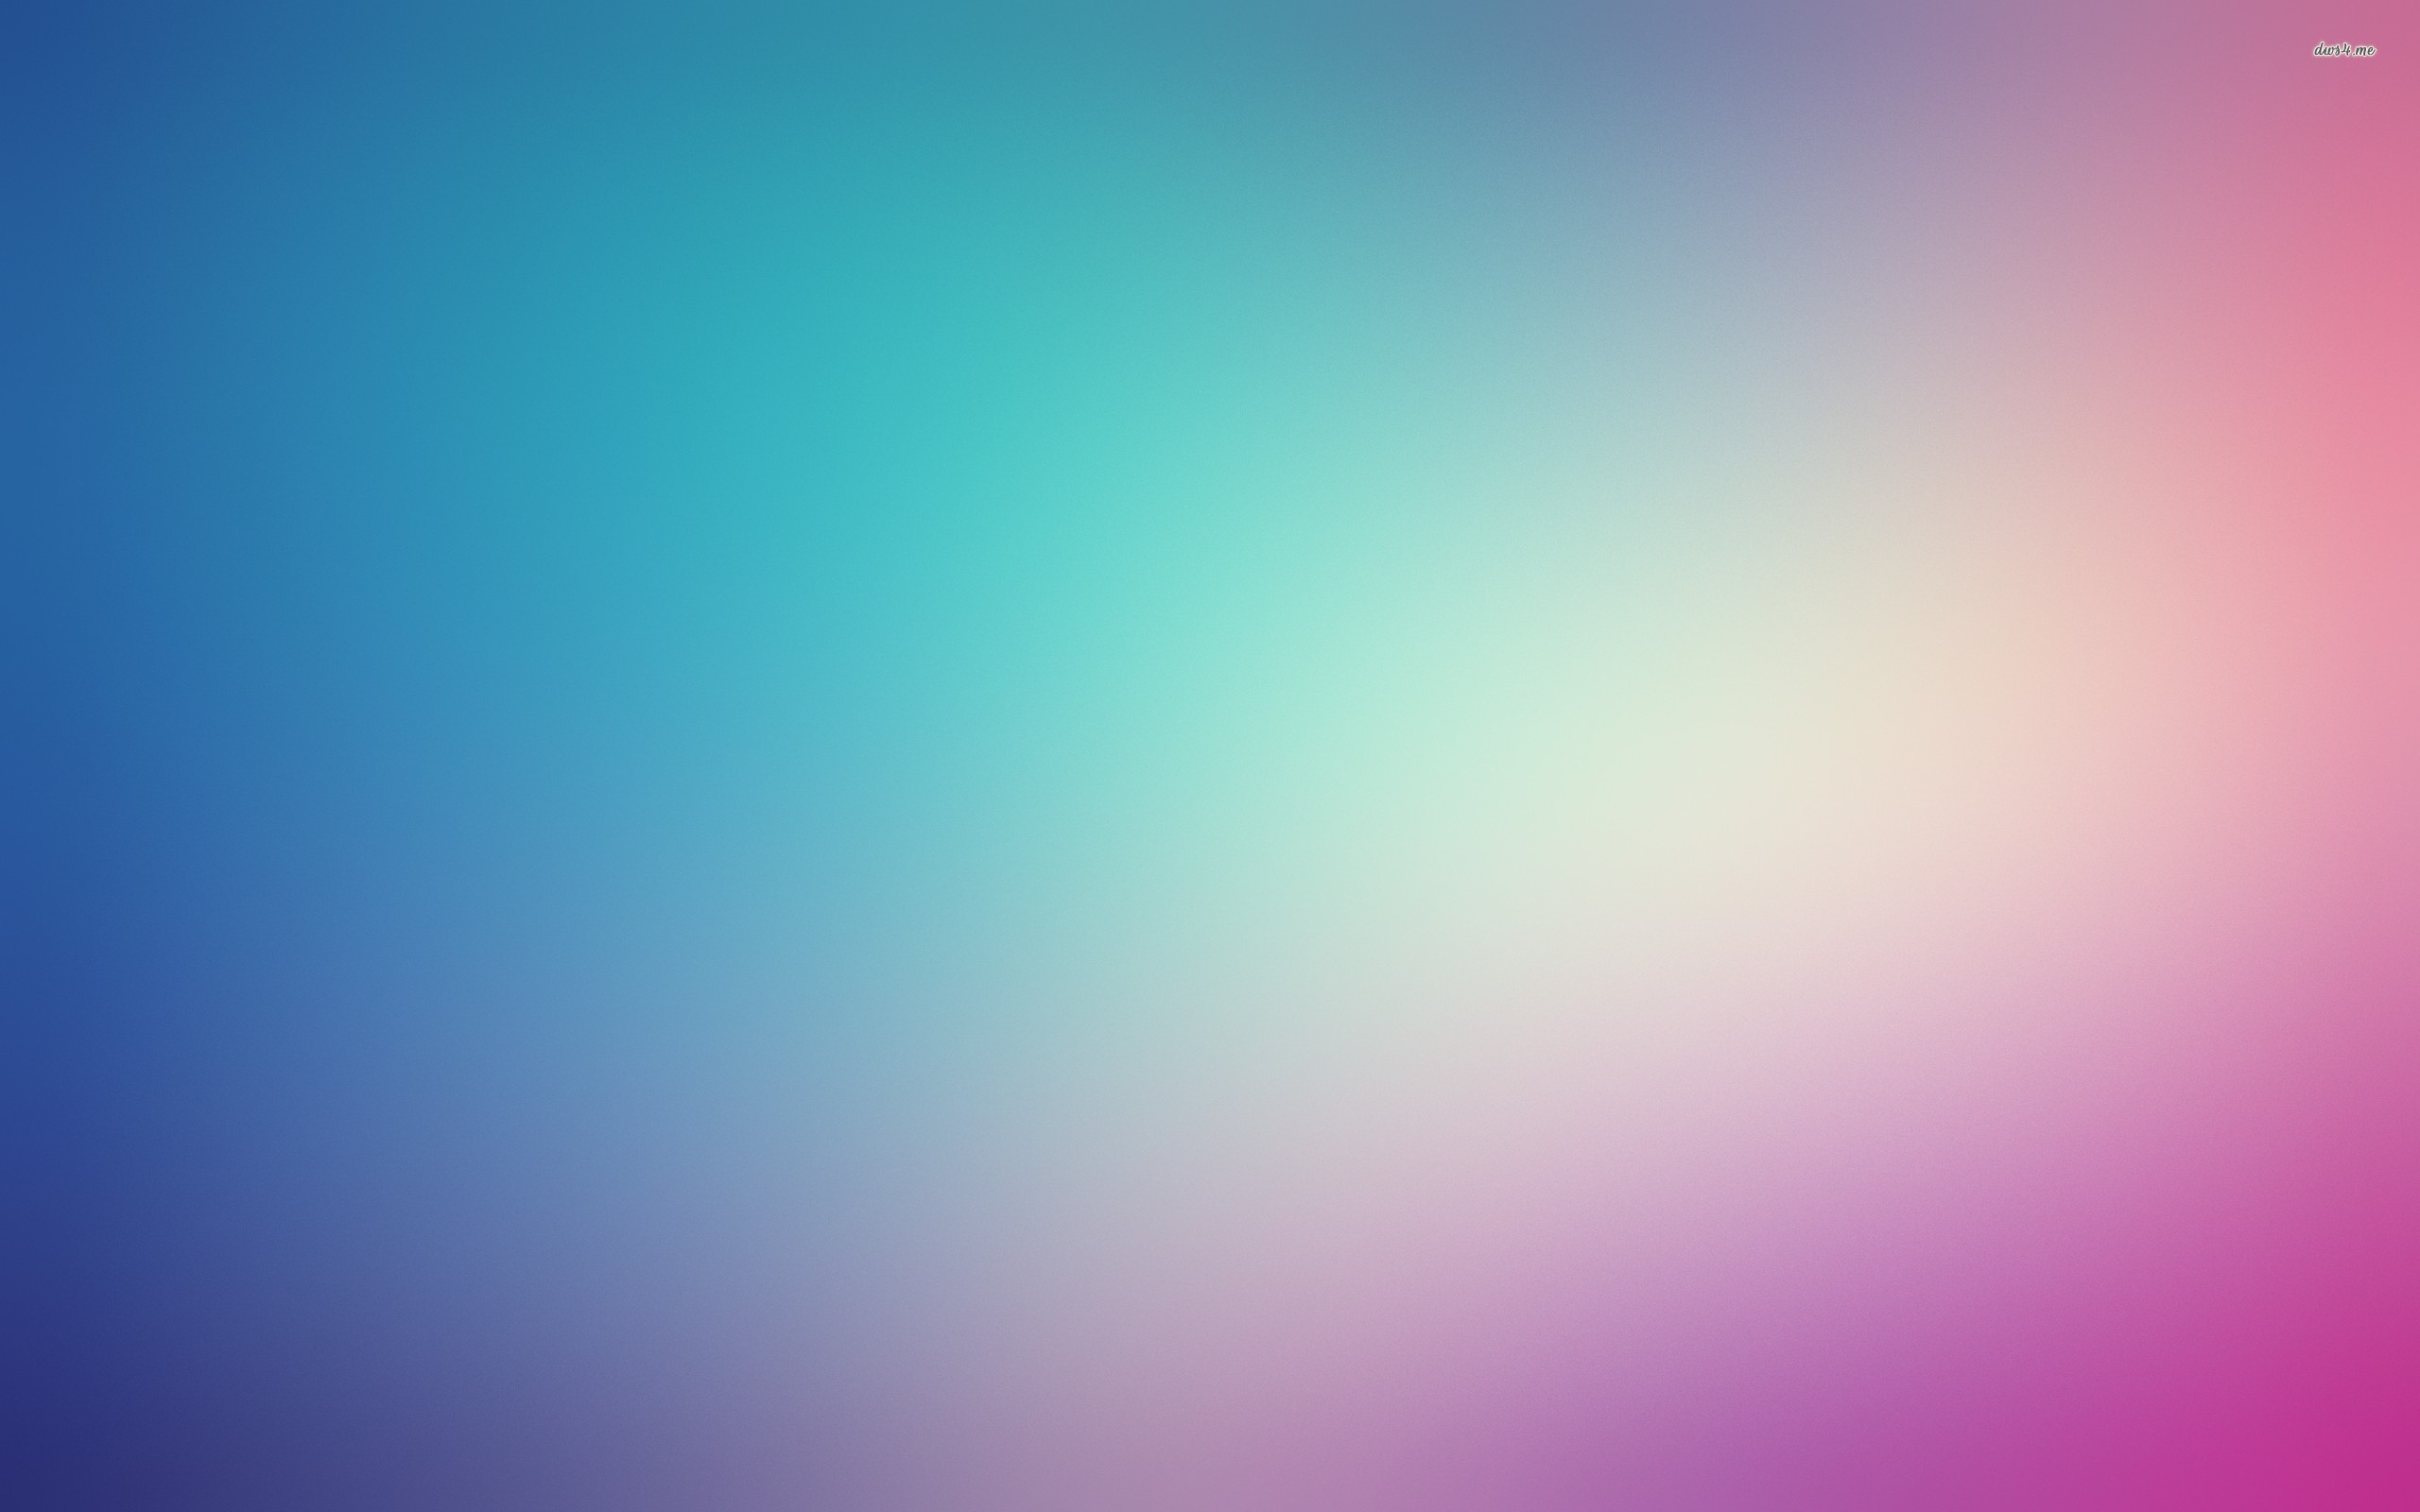 2560x1600 Blue gradien blur, gradient, abstract,  HD Wallpaper and .